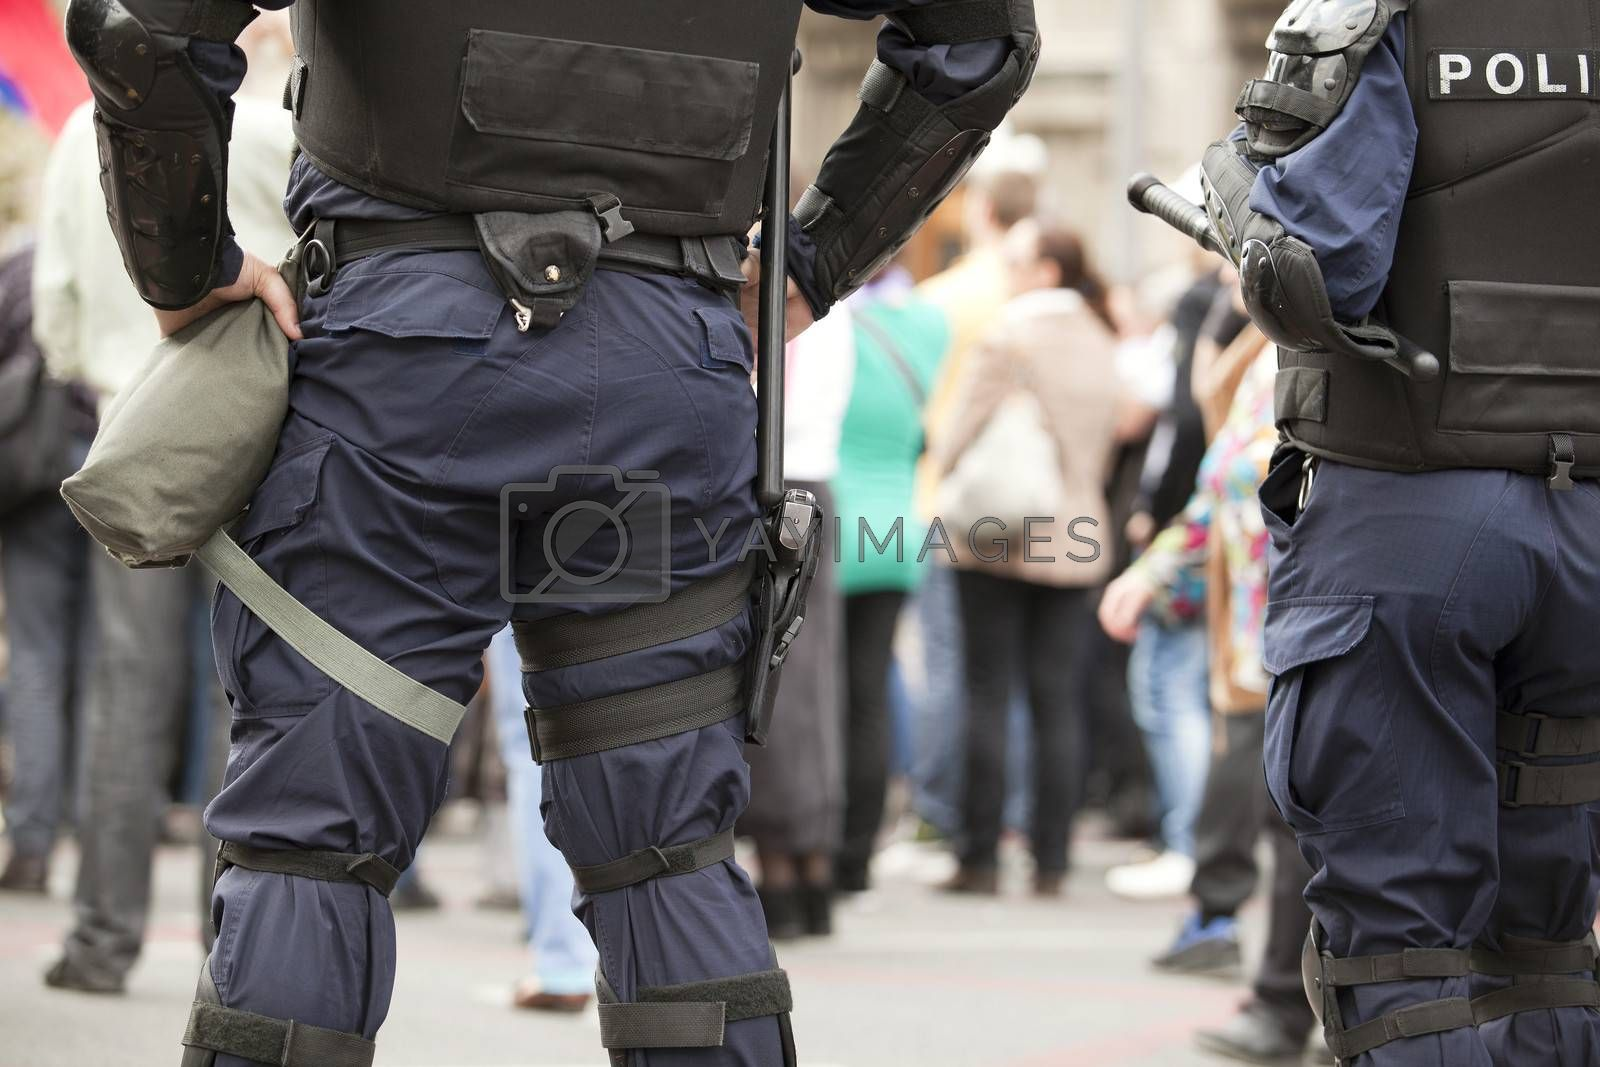 Police officers with gear on duty